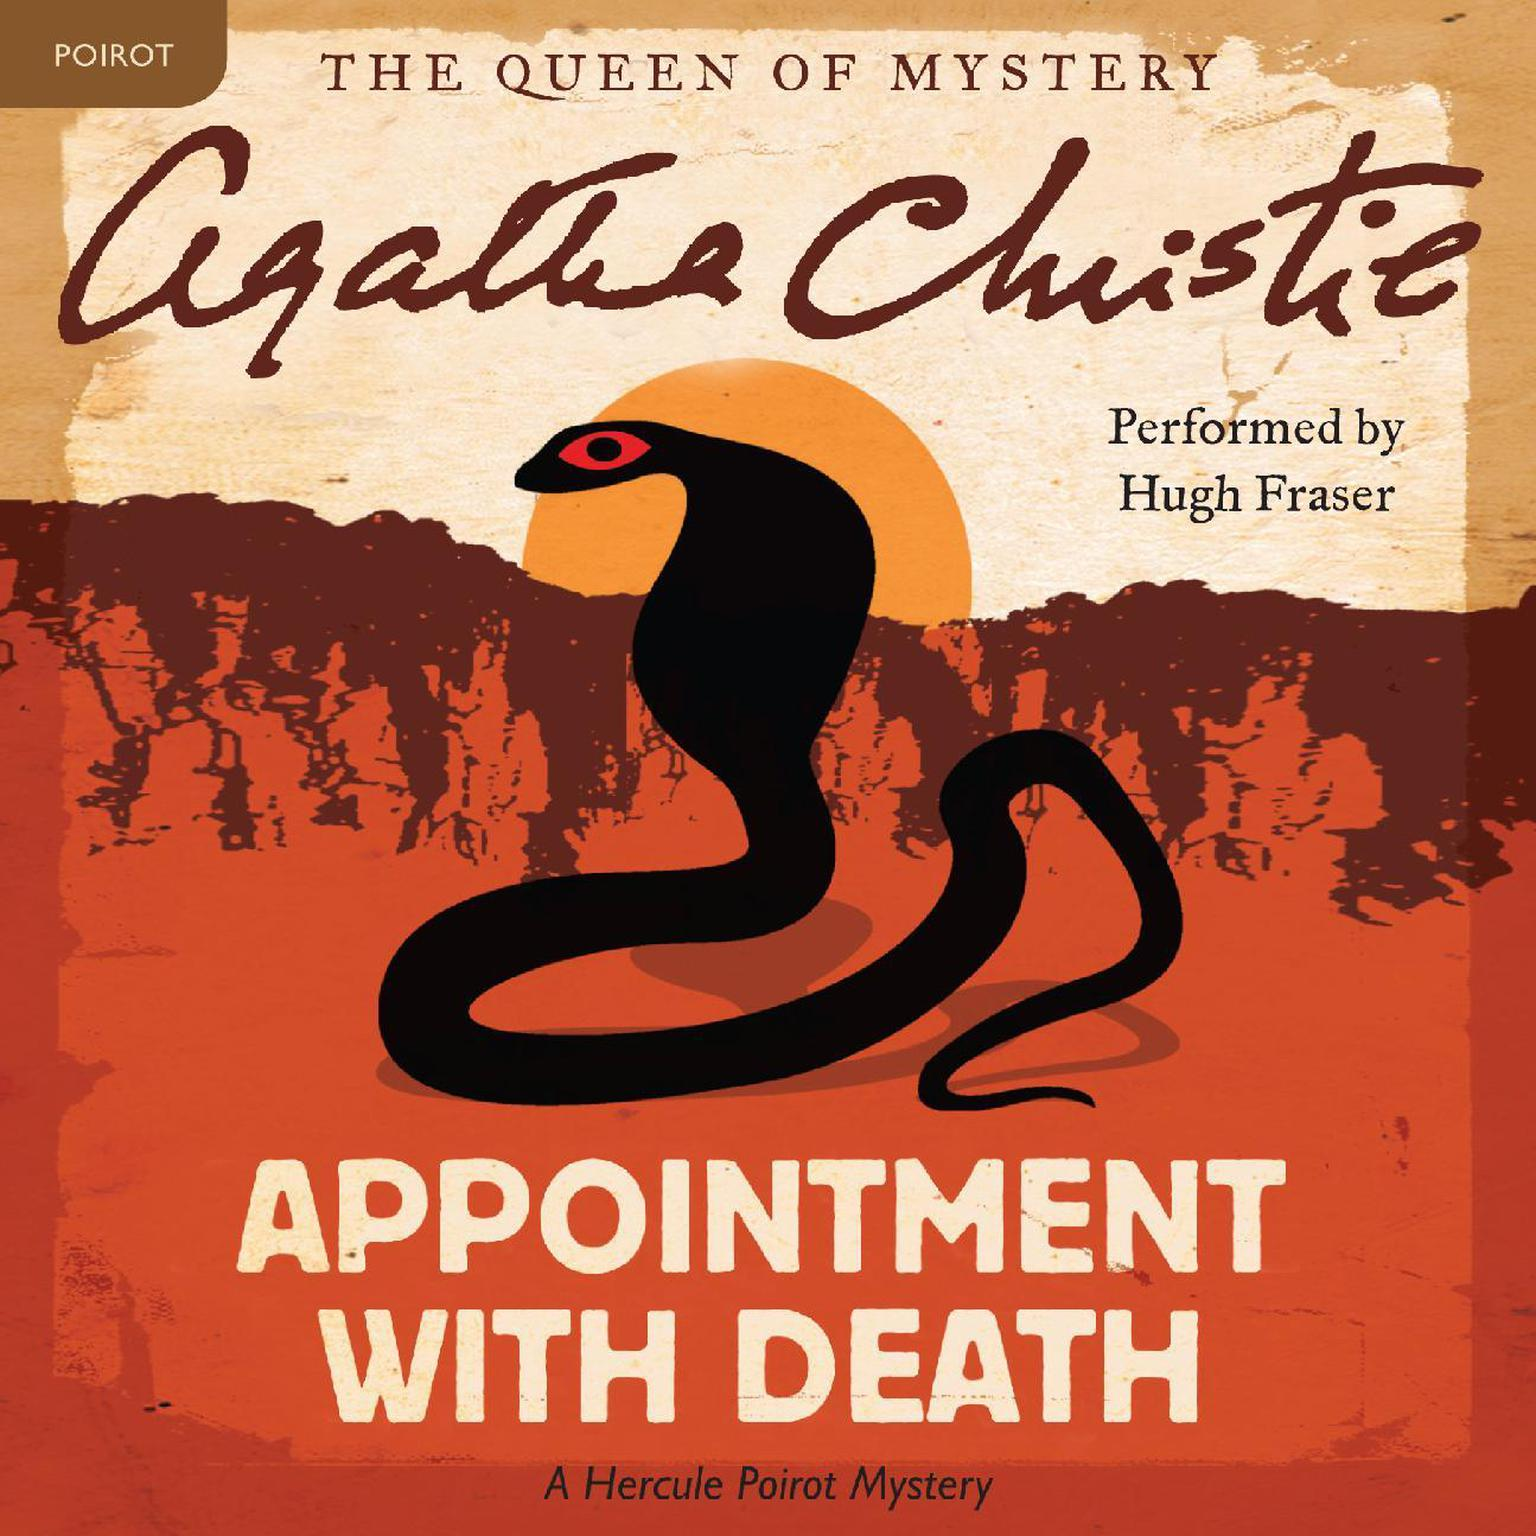 Appointment with Death: A Hercule Poirot Mystery Audiobook, by Agatha Christie